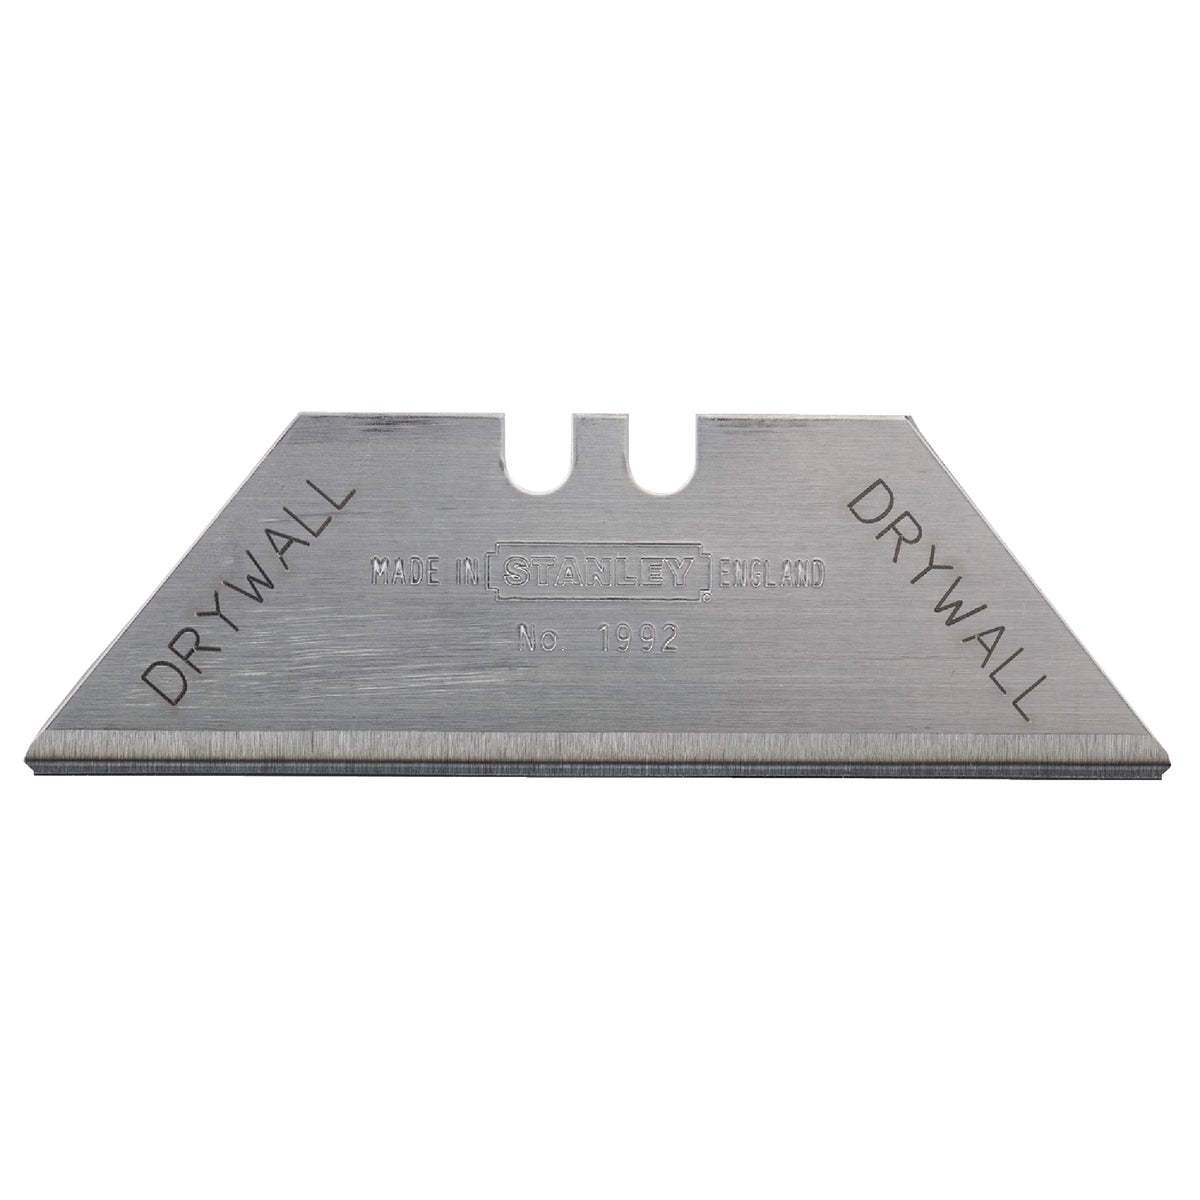 3PK HD DRYWALL BLADE - 11-937 by Stanley Tools